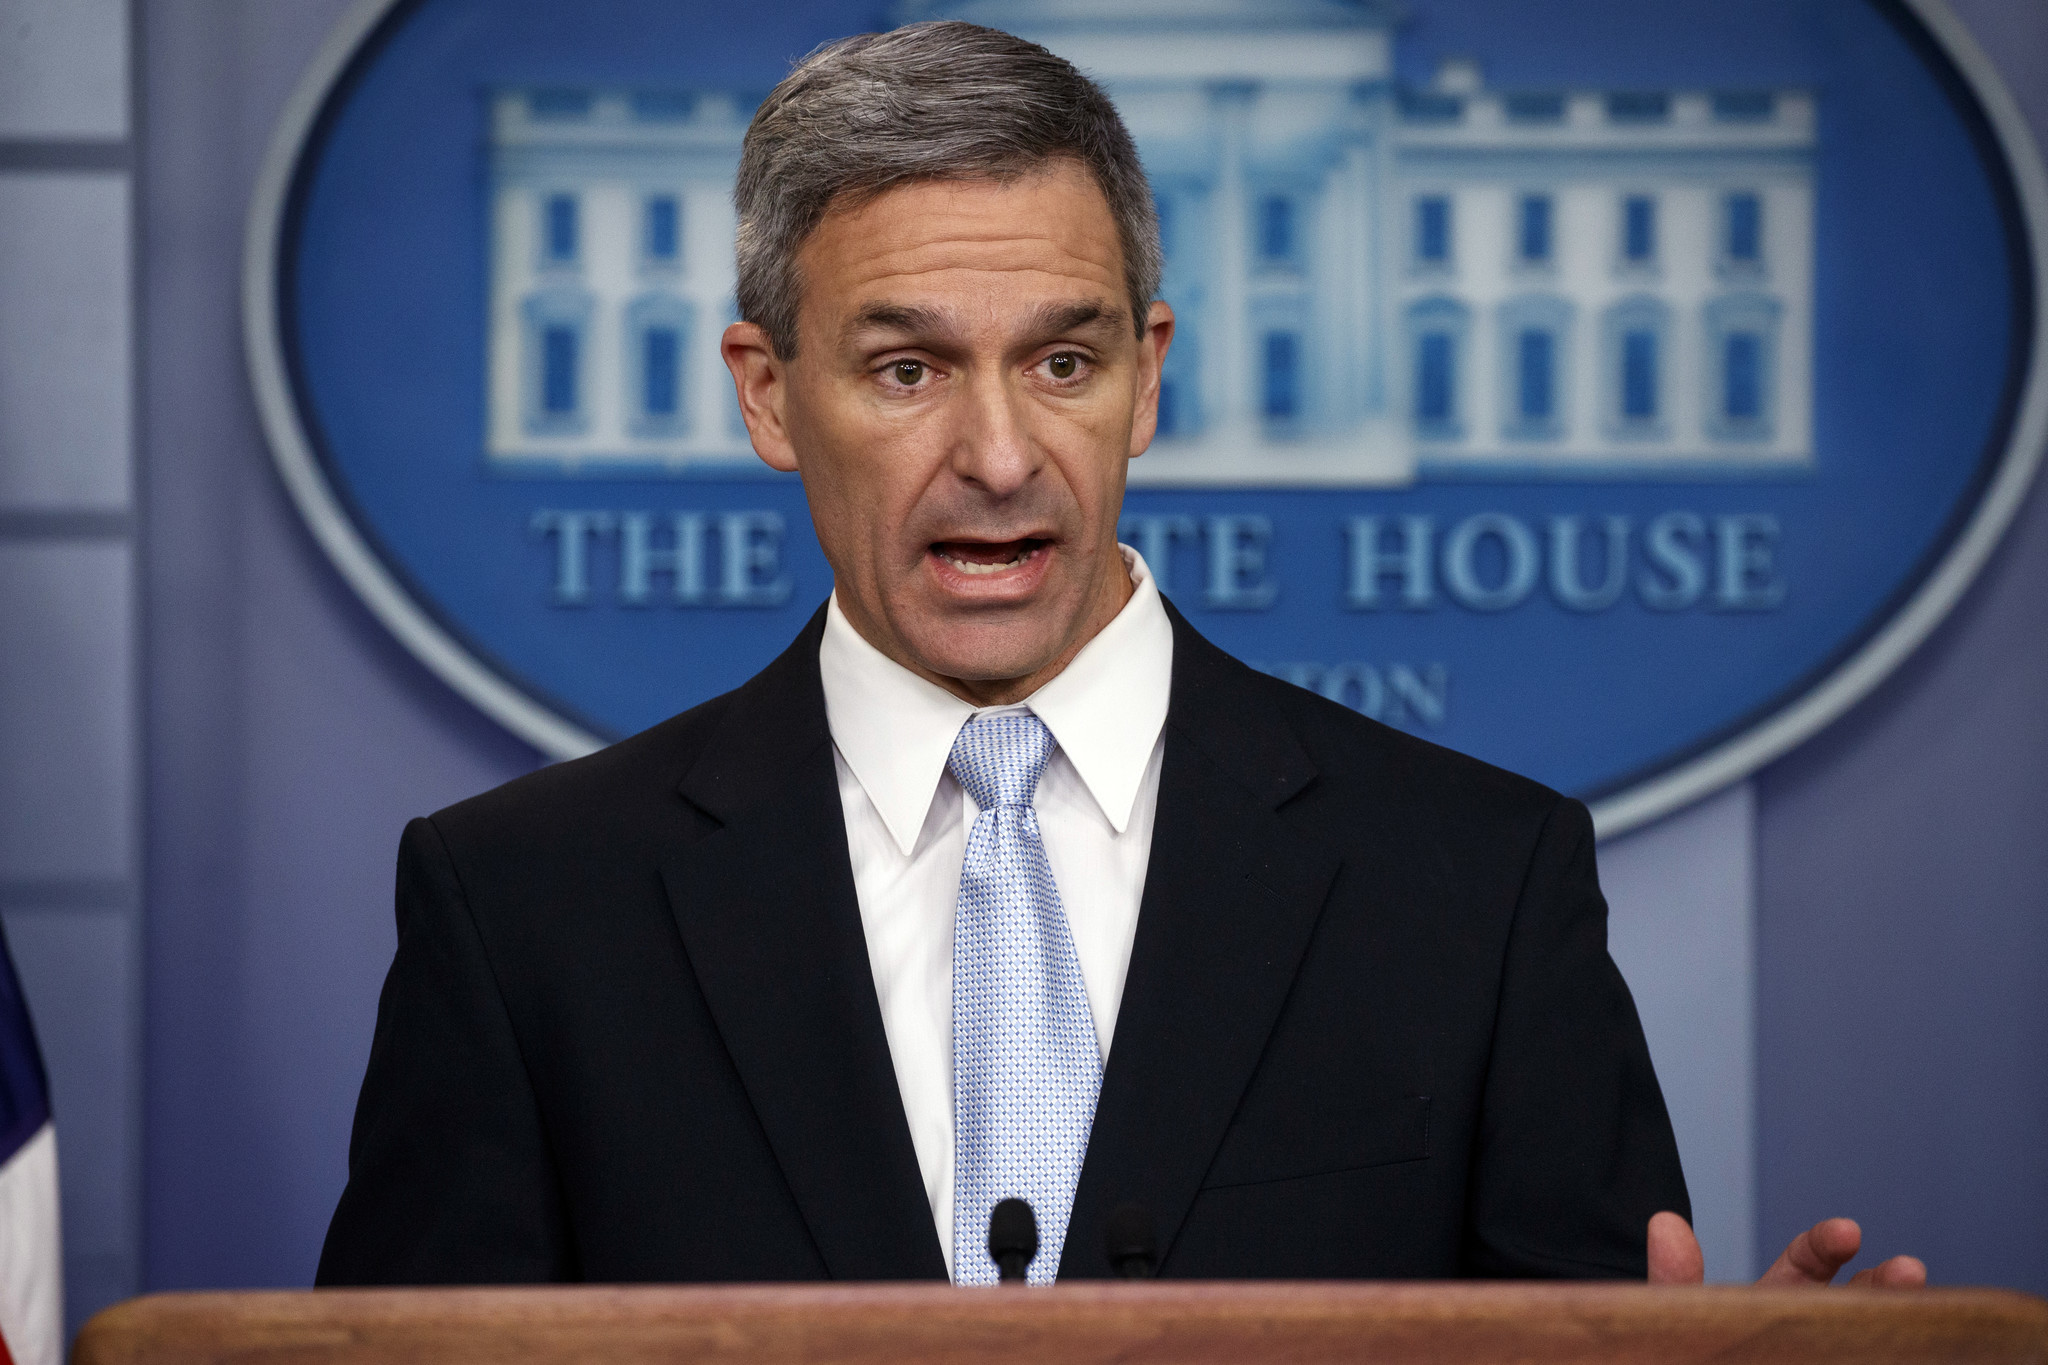 Homegrown hypocrite: Ken Cuccinelli, Trump's immigration chief, betrays path his own ancestors took to America